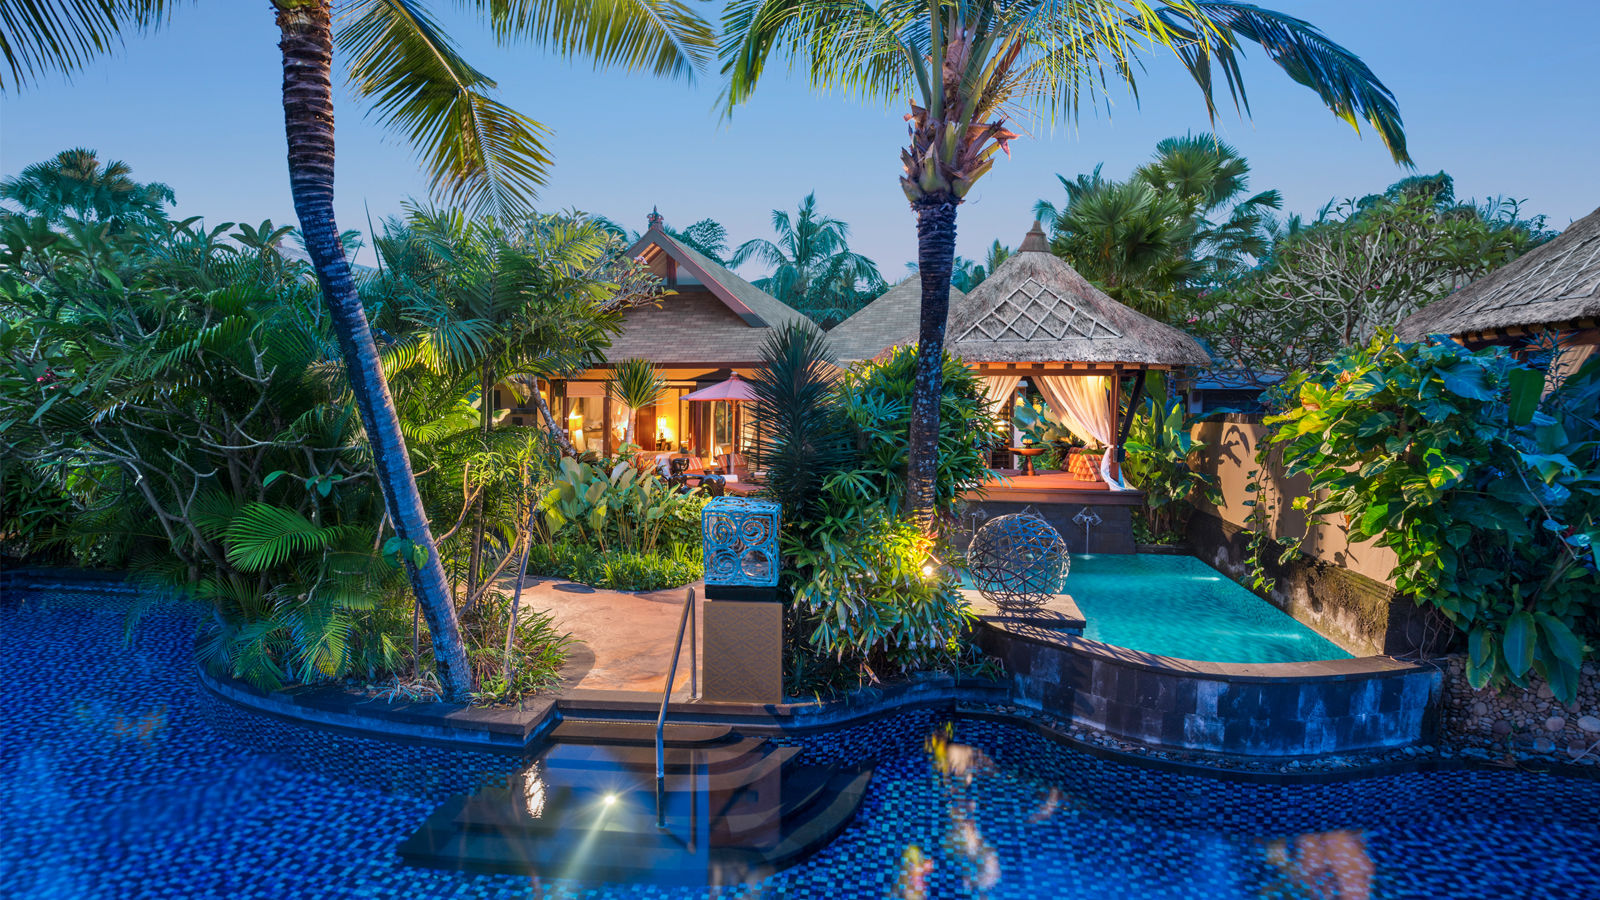 Luxury villa bali lagoon villa two bedroom st regis for The one hotel bali